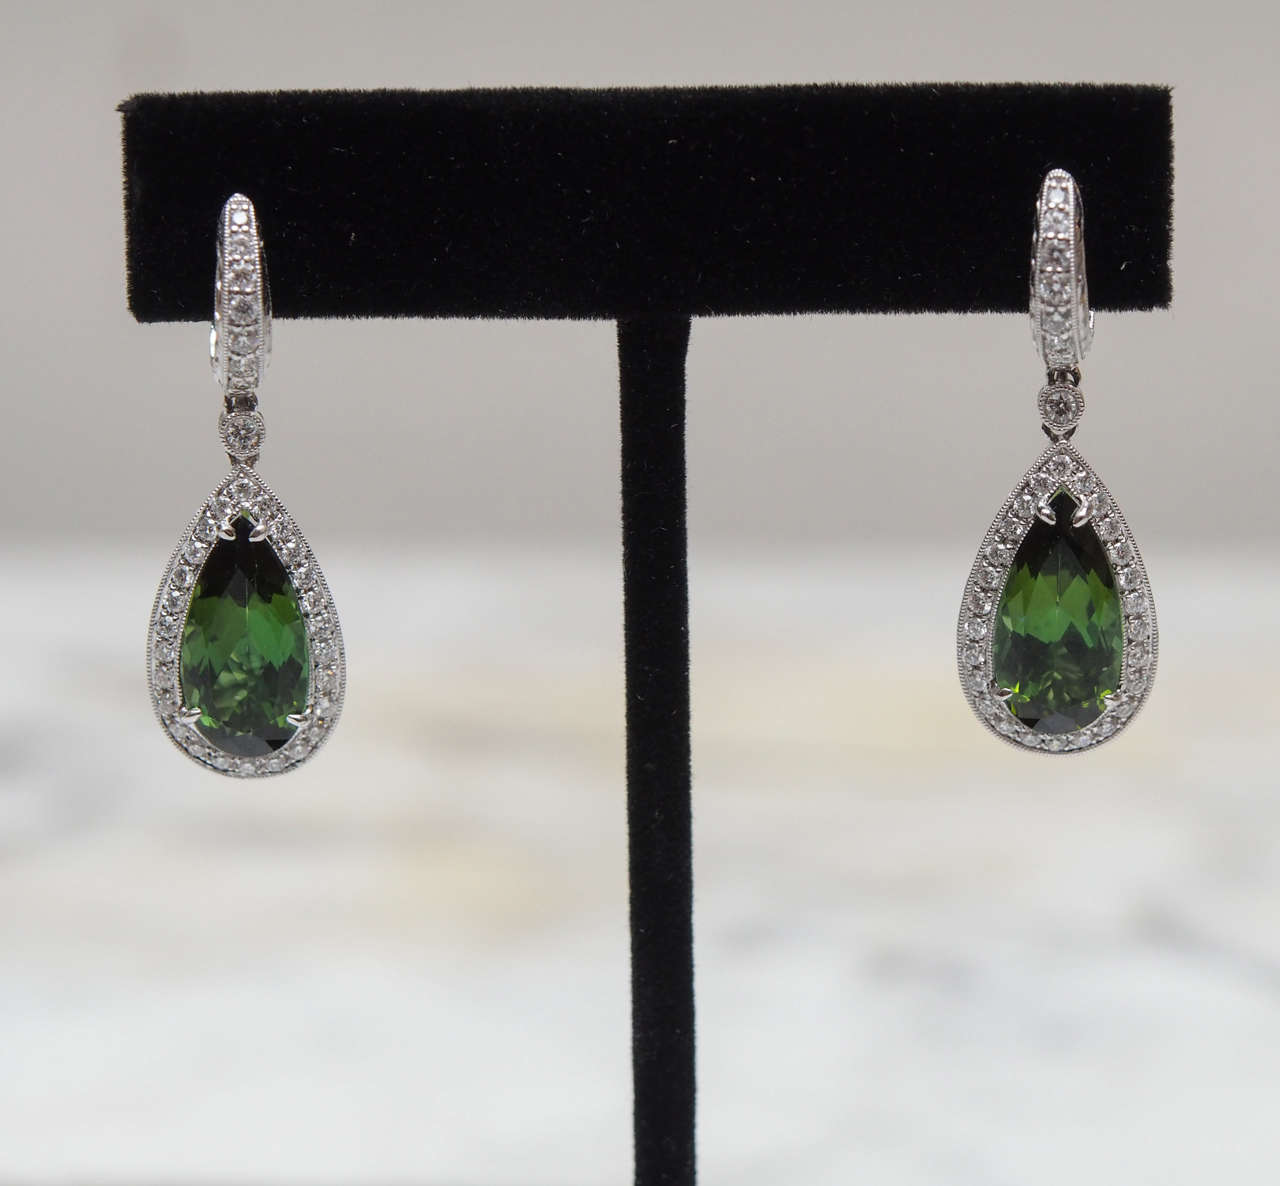 One pair of Chrome Tourmaline and diamond earrings.  The tourmalines weigh approximately 3.85cts each.  There are 34 diamonds, having F-G color and VS clarity, in each earring weighing approximately 1.02cts. Total weight for the tourmalines is